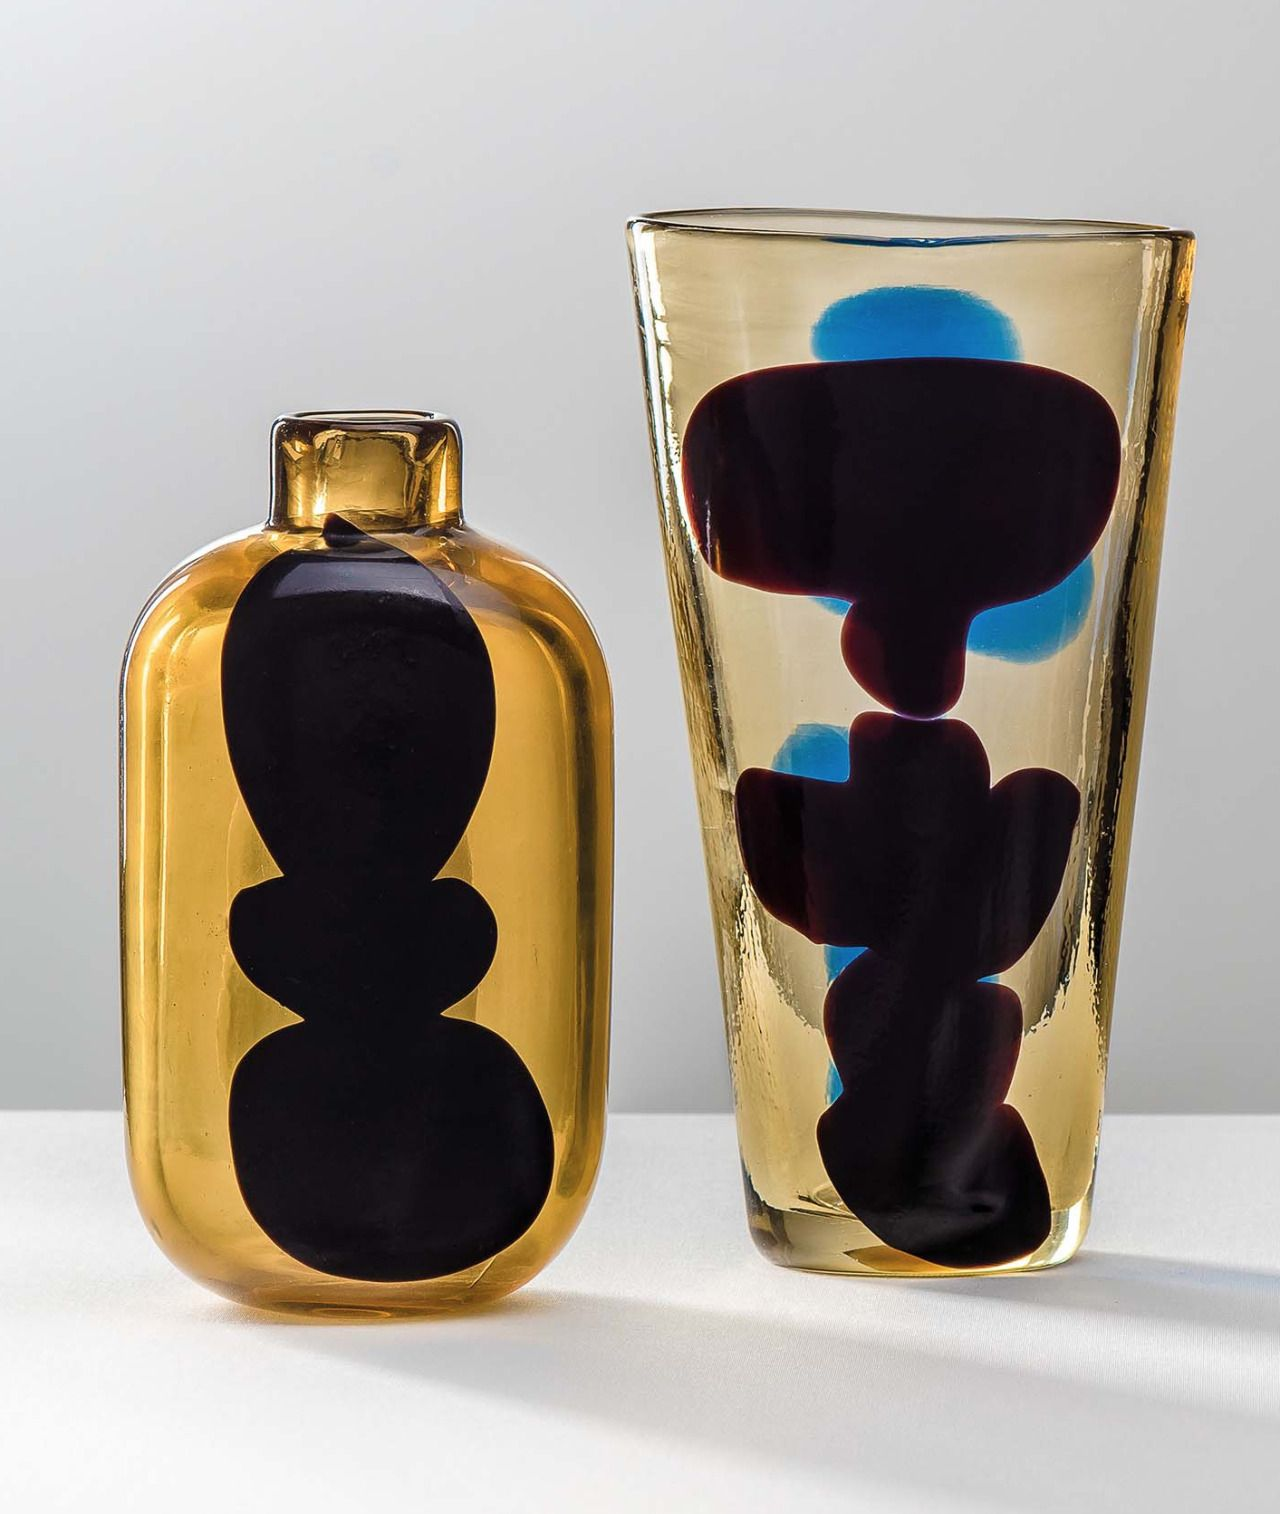 """scandinaviancollectors: """" FULVIO BIANCONI, A Macchie, bottle and vase, 1950. Material amber glass with colored a macchie inclusions. Manufactured by Venini, Italy. / Daily Apple """""""